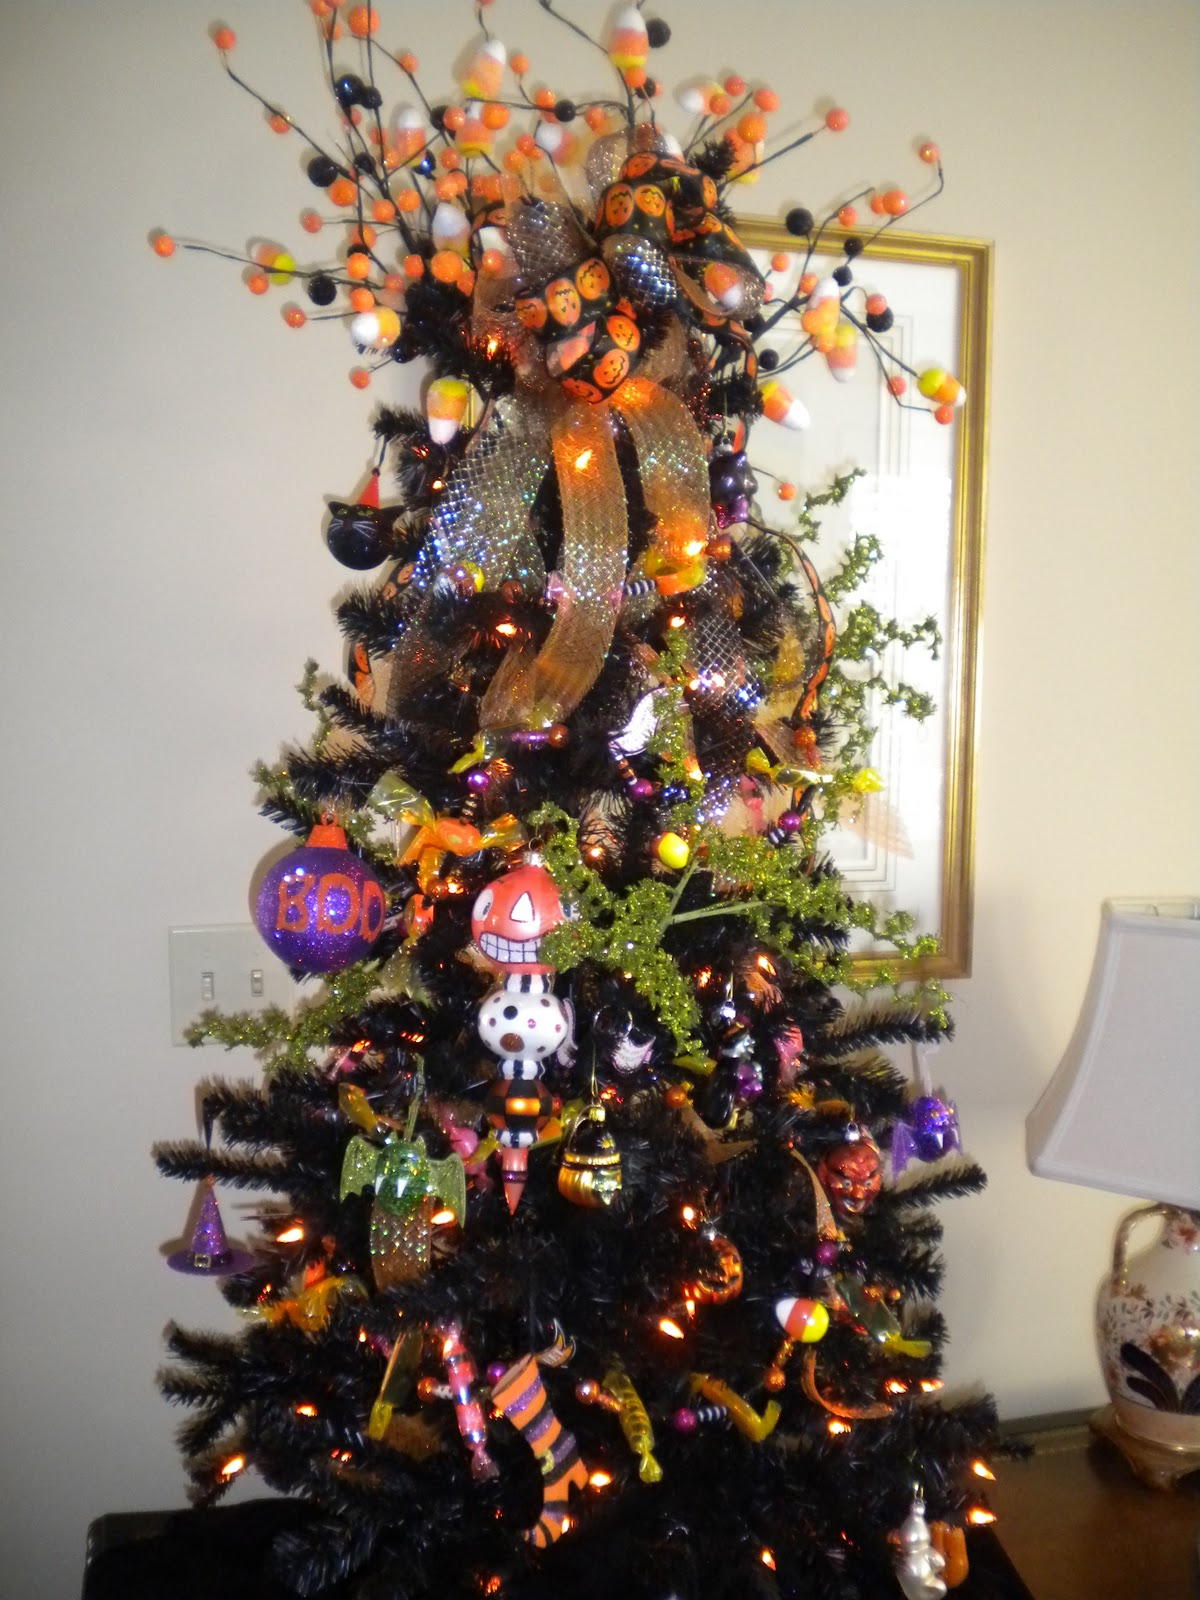 Halloween tree ornaments - The Halloween Tree Is Up In All Of Its Orange And Black Glory The Sad Thing About It Is The Lack Of Any Stitched Ornaments Next Year Will Be Different And